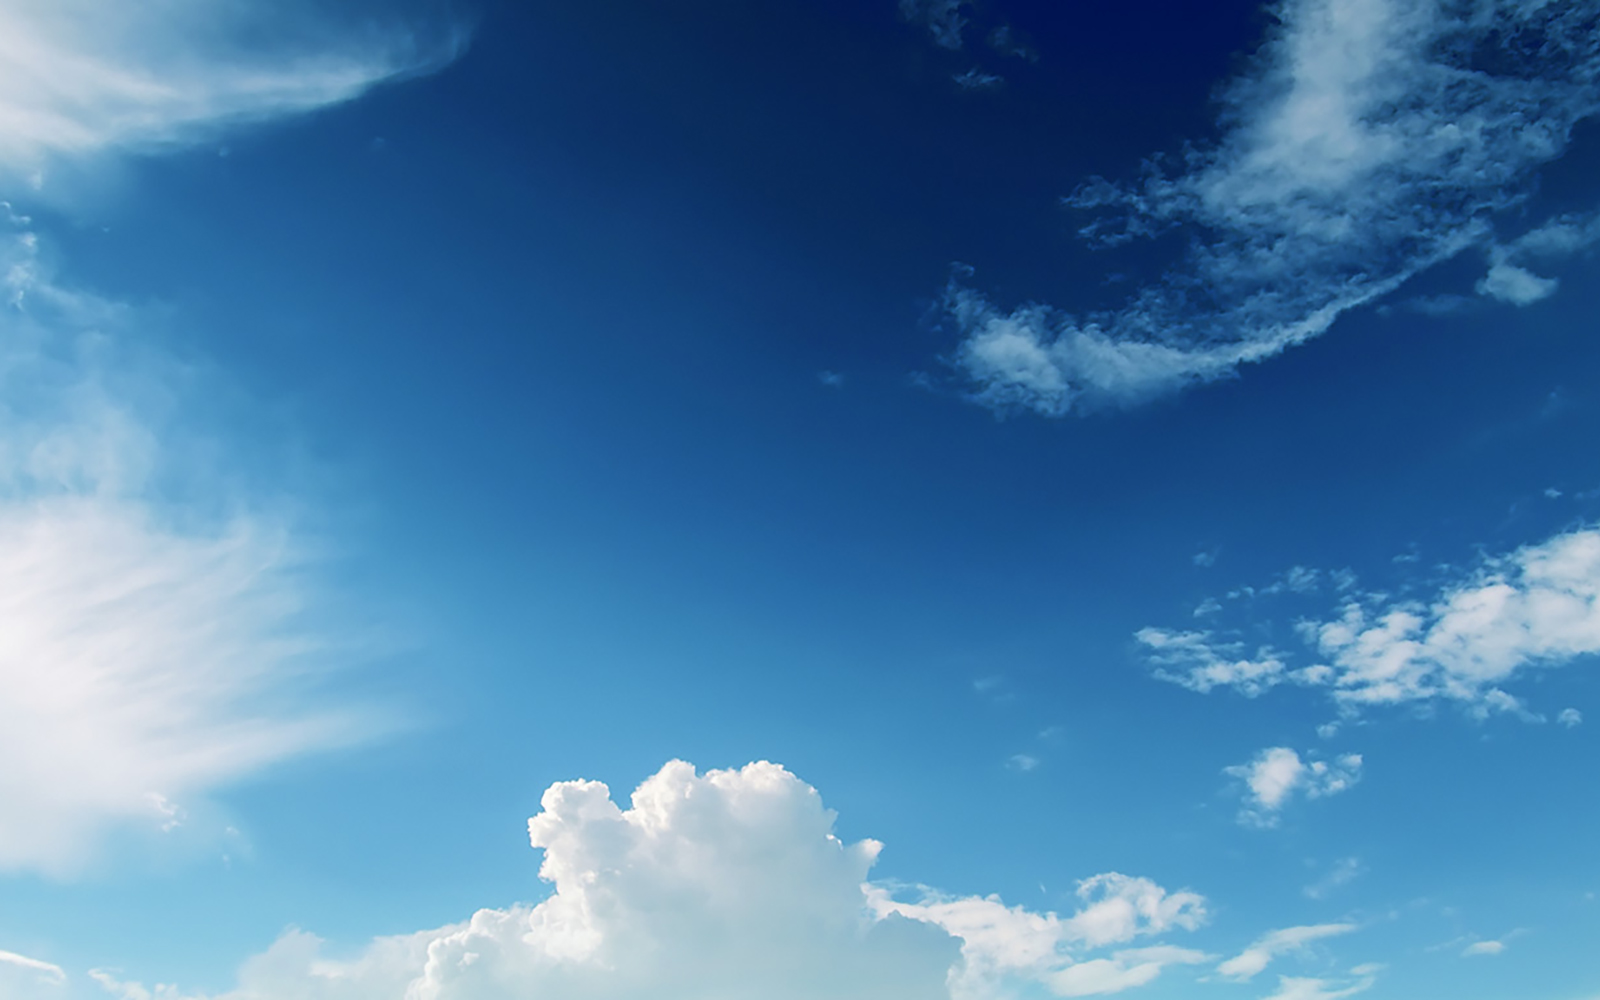 Clear blue sky with puffy white clouds